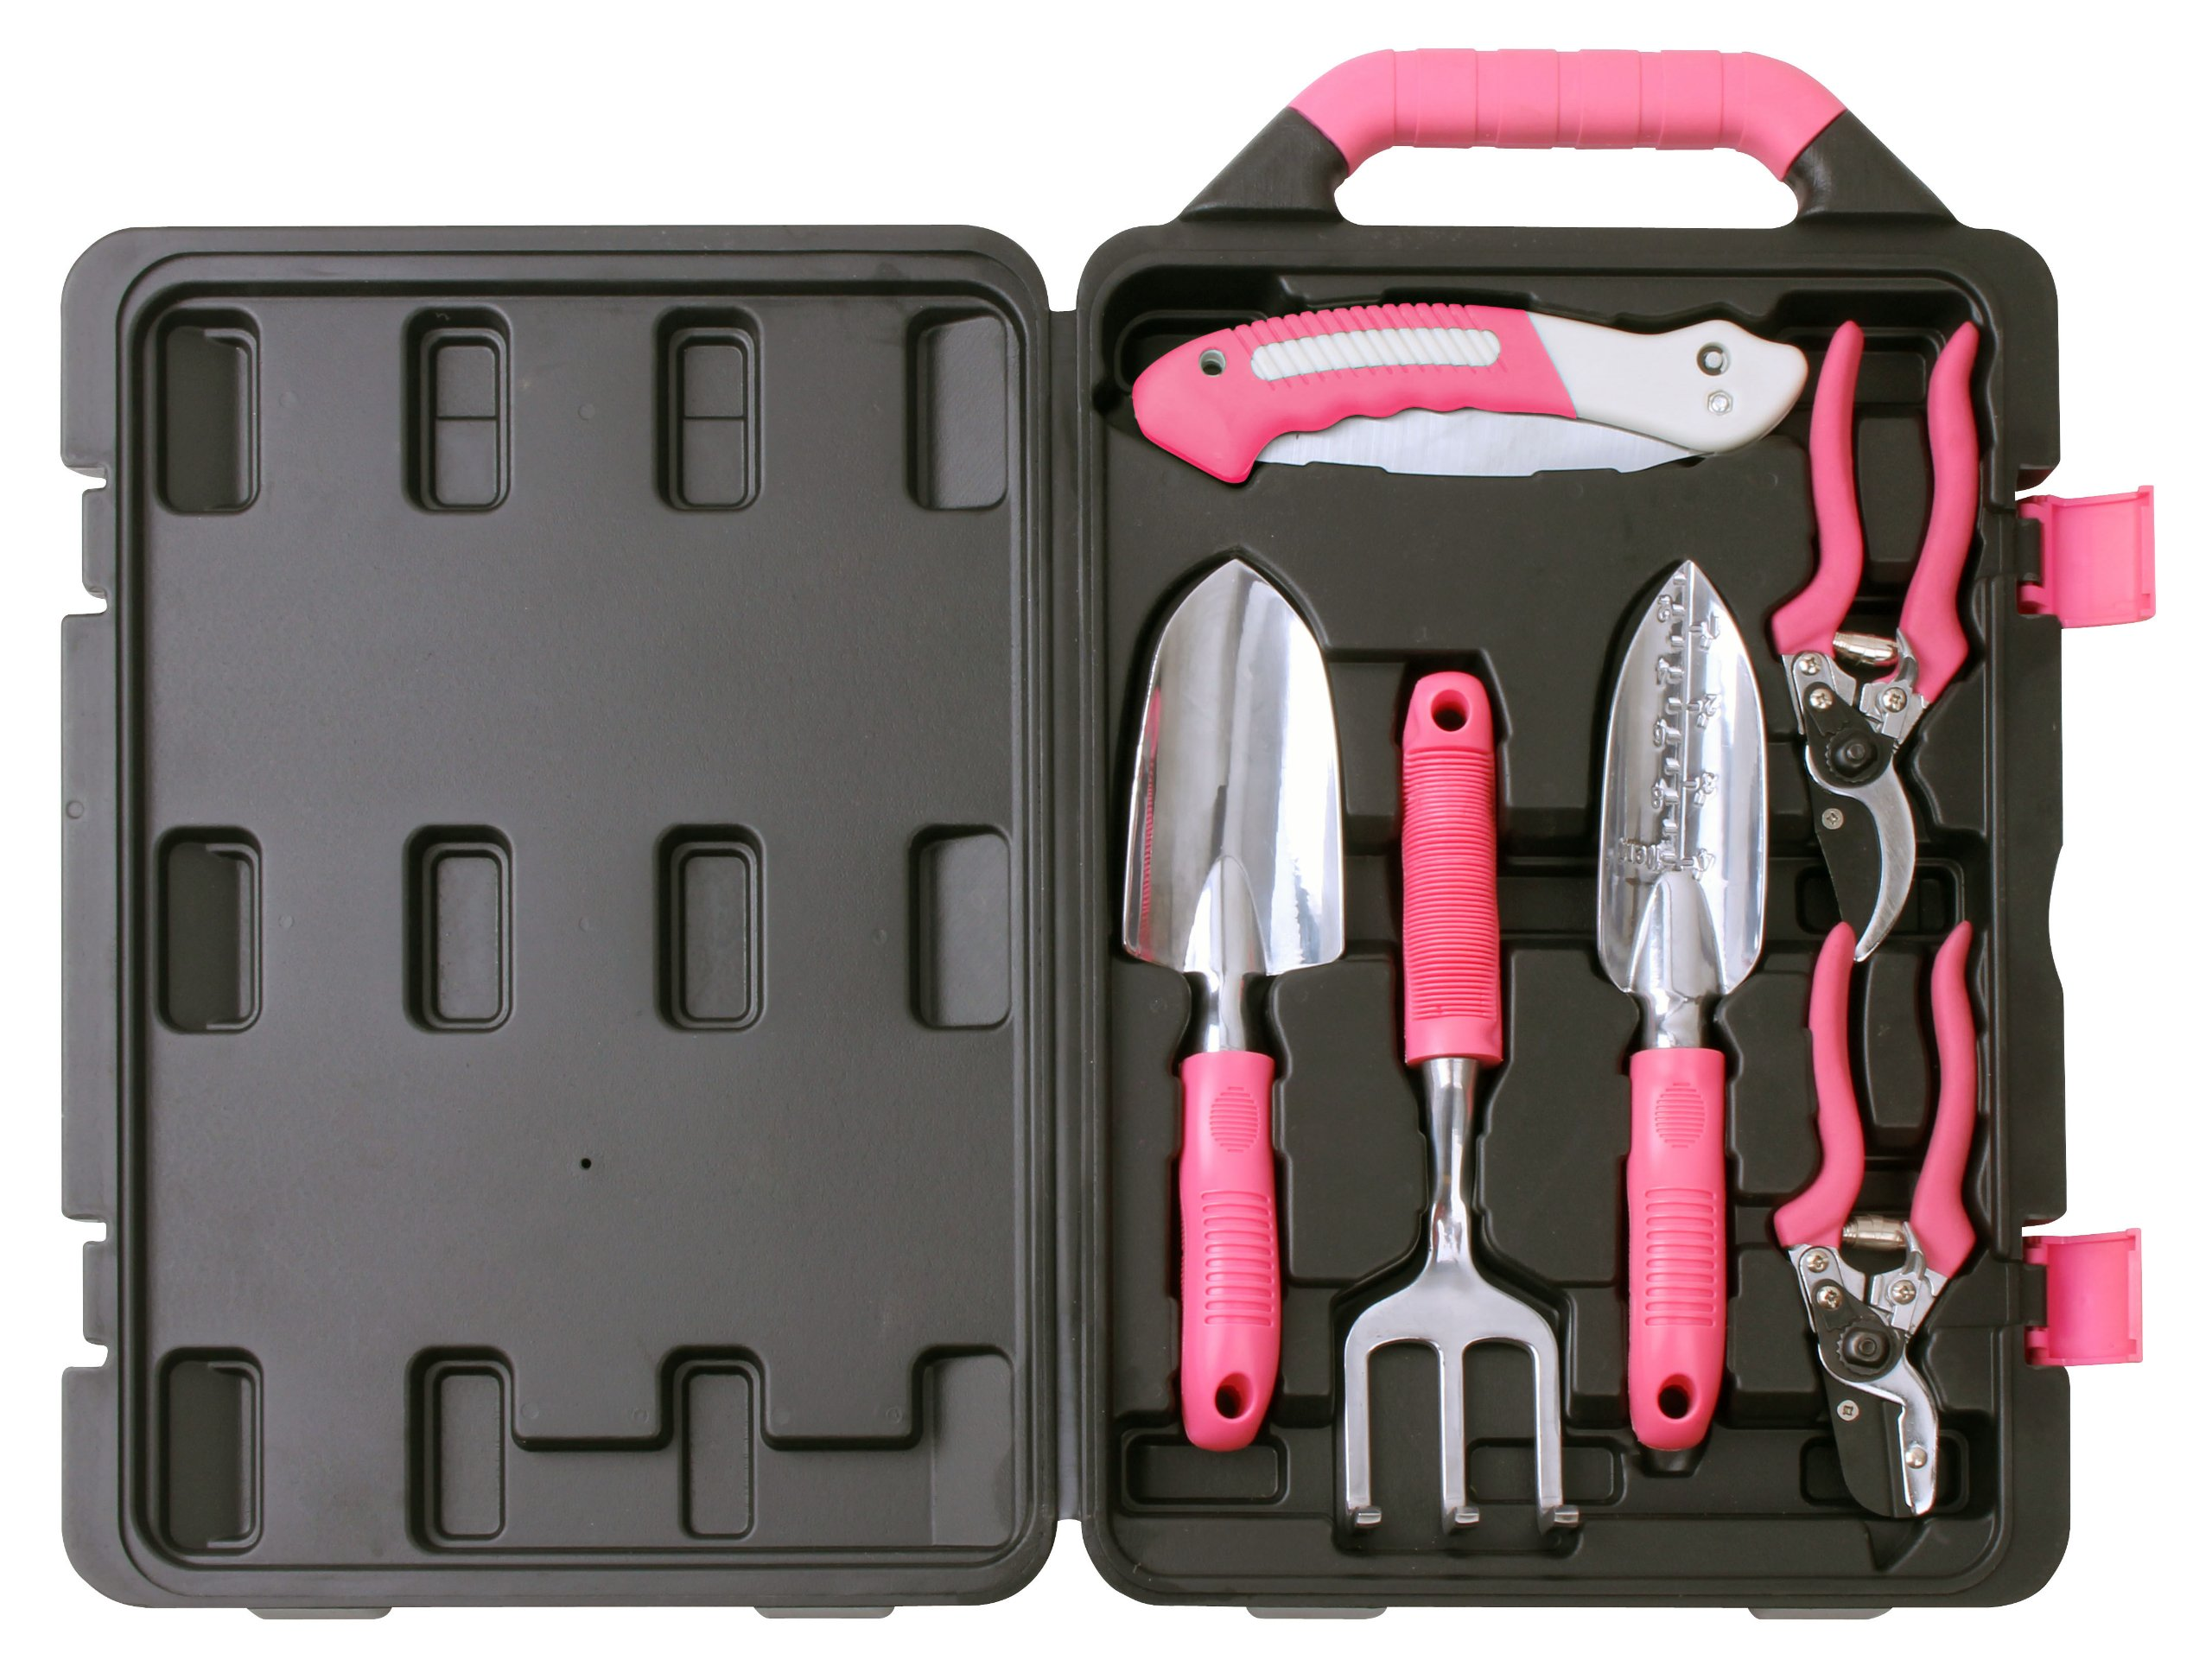 Apollo Precision Tools DT3706P Garden Tool Kit, Pink, 6-Piece, Donation Made to Breast Cancer Research